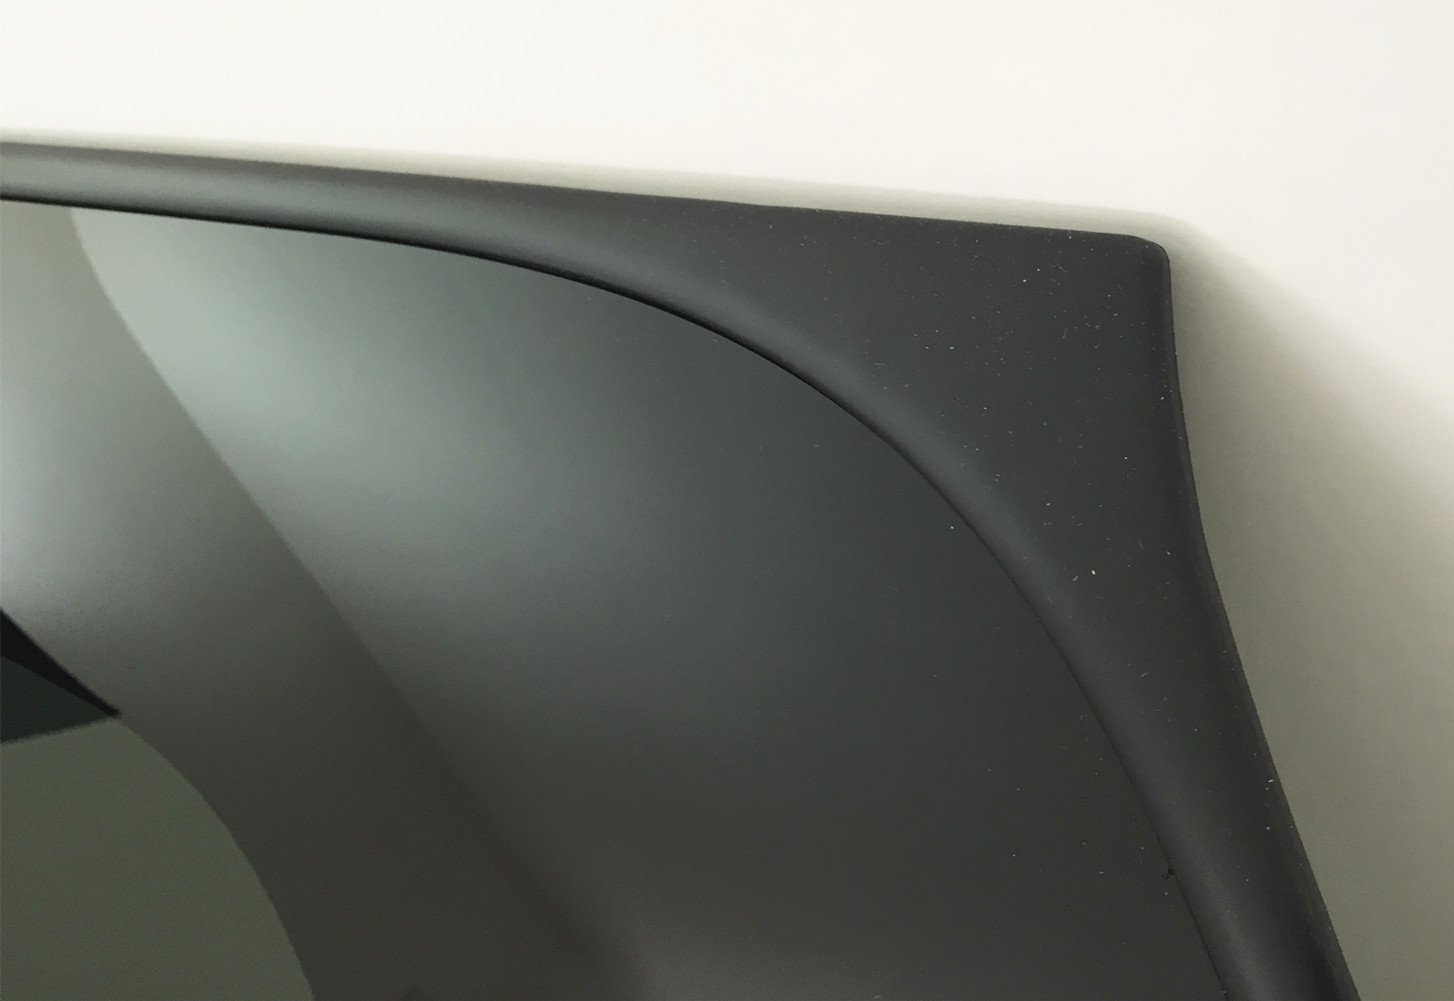 NAGD Compatible with 2000-2006 Chevy Suburban /& GMC Yukon XL 4 Door Utility Driver Side Left Rear Quarter Glass Window w// 2 Sika